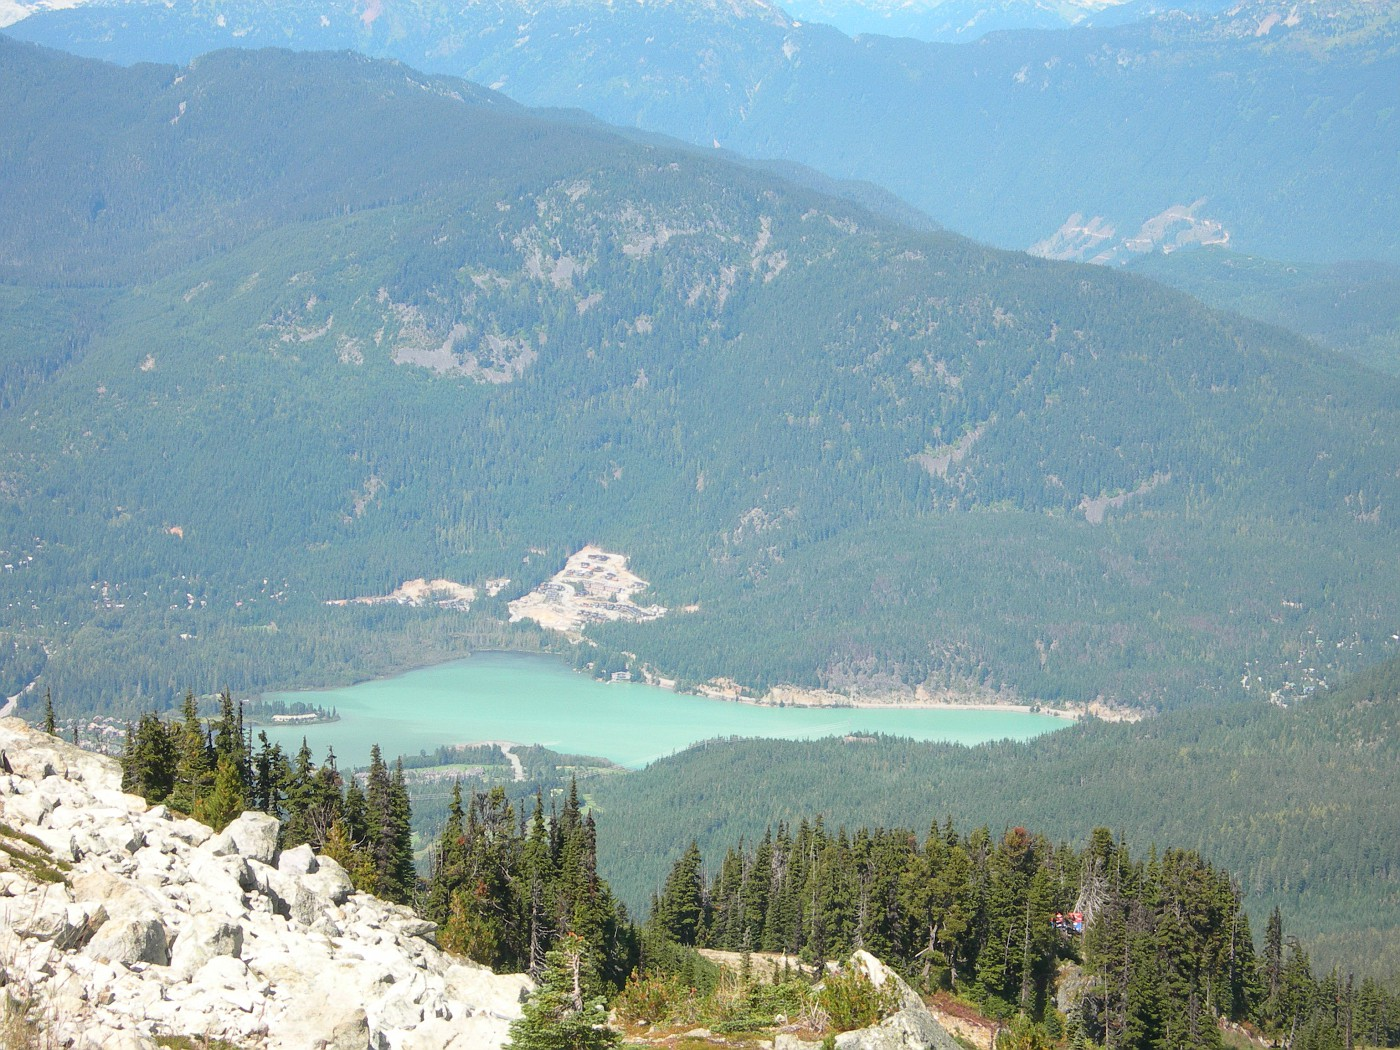 View from the top of Blackcomb